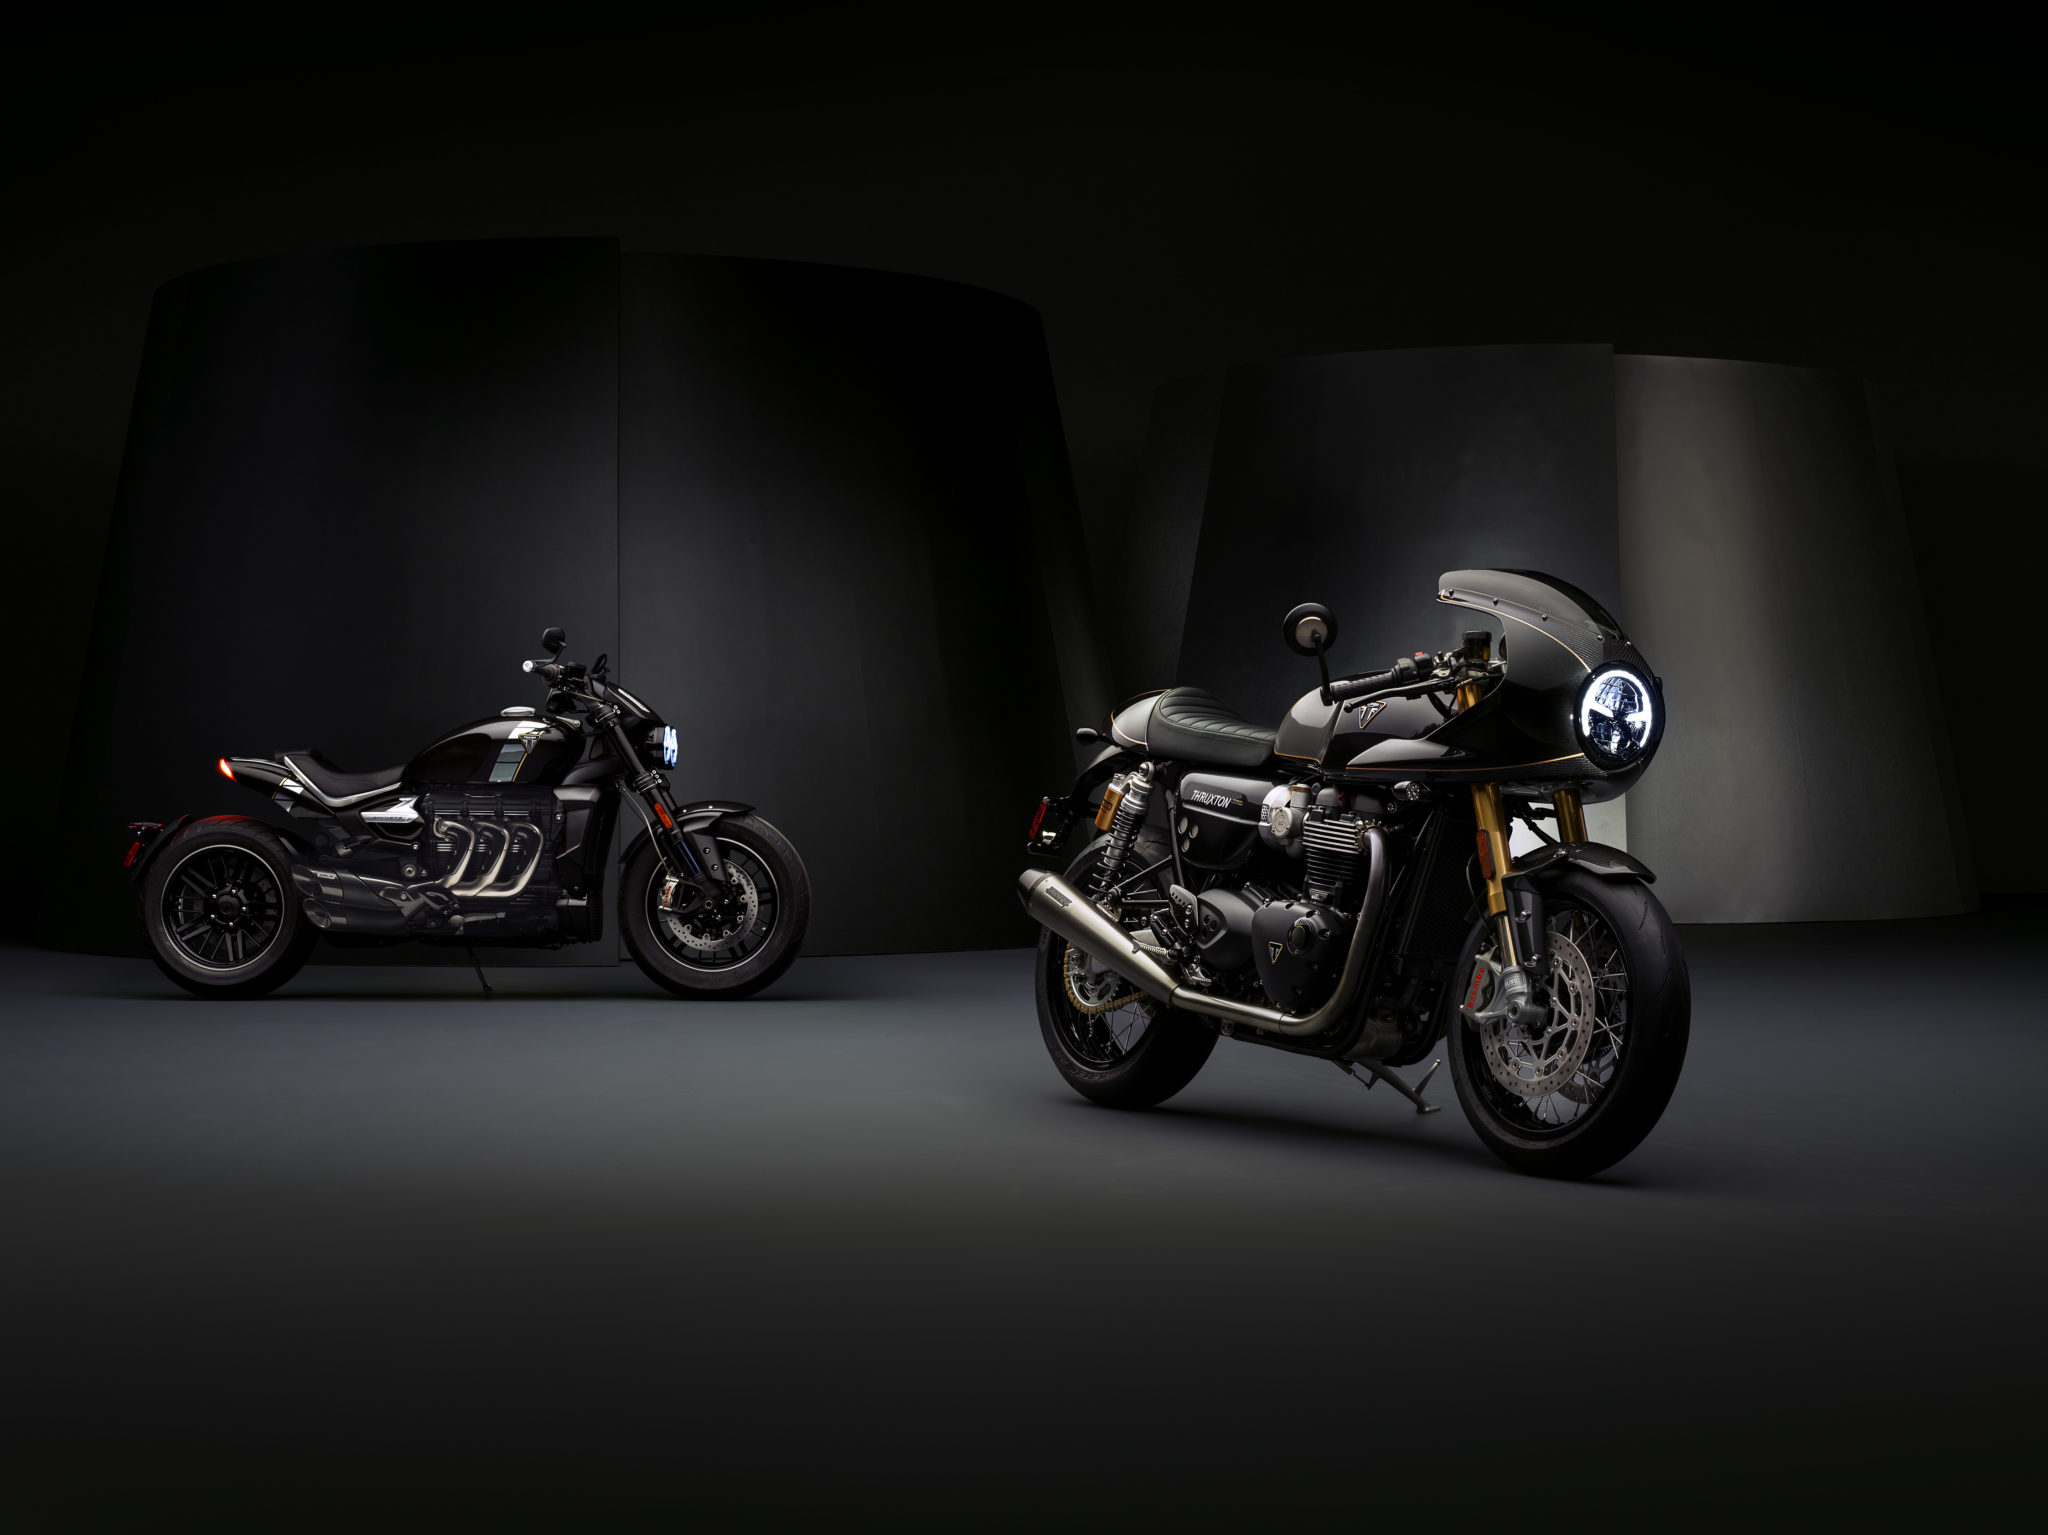 383af6535f9f With the 2019 launch of the all-new exclusive Triumph Factory Custom line